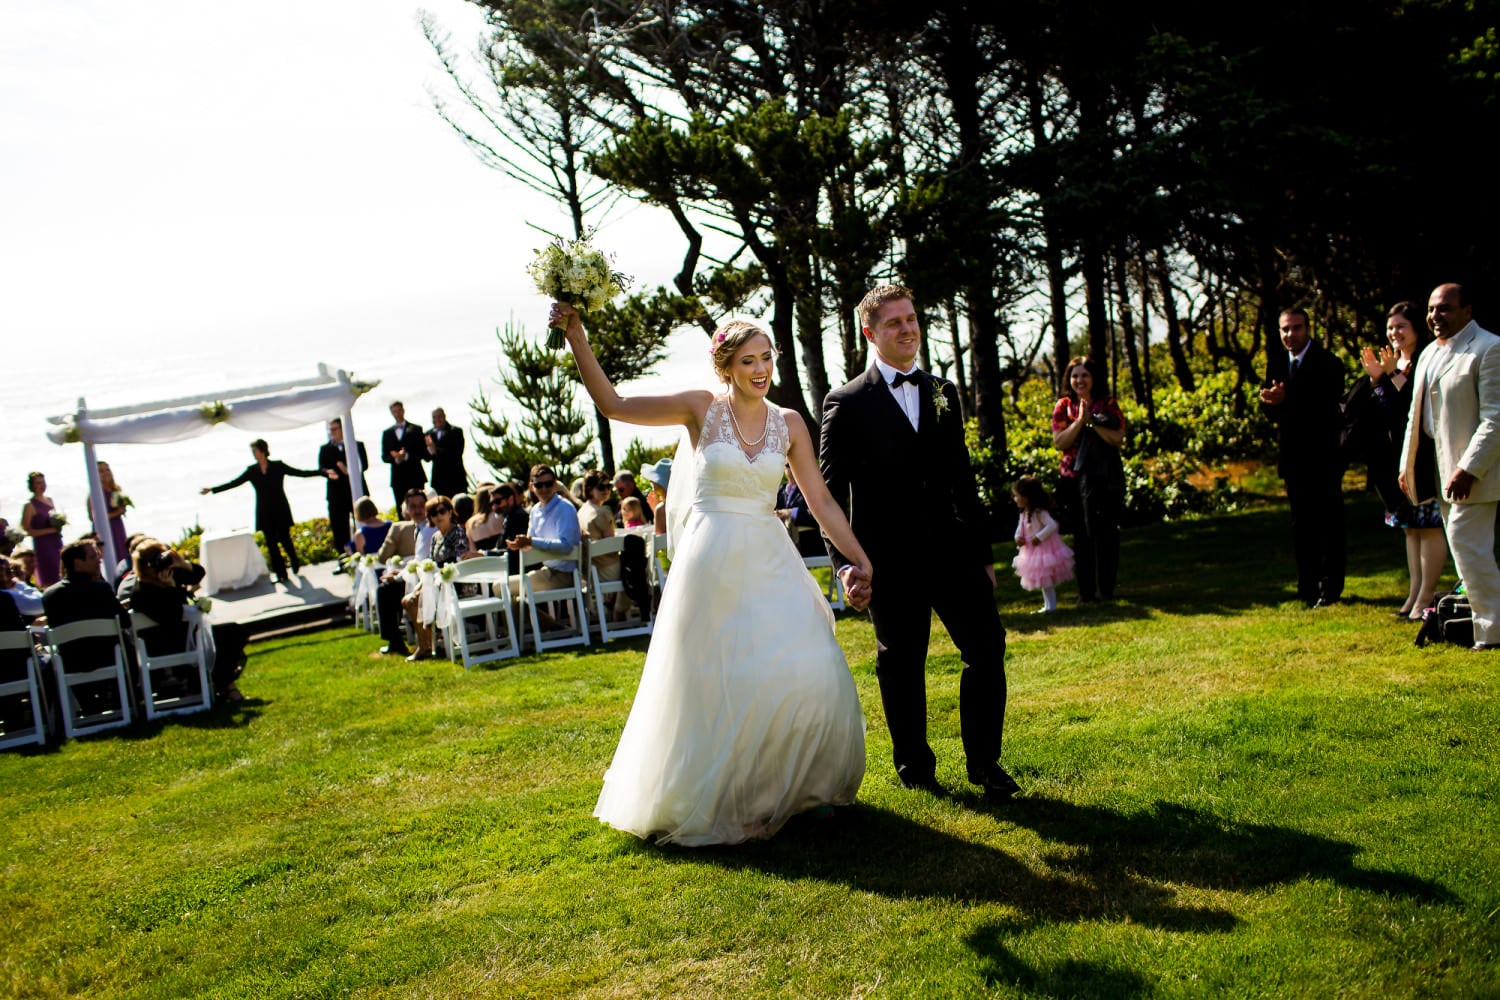 Storm Crest Cellars Wedding in South Beach Newport, Oregon by Stark Photography (25)